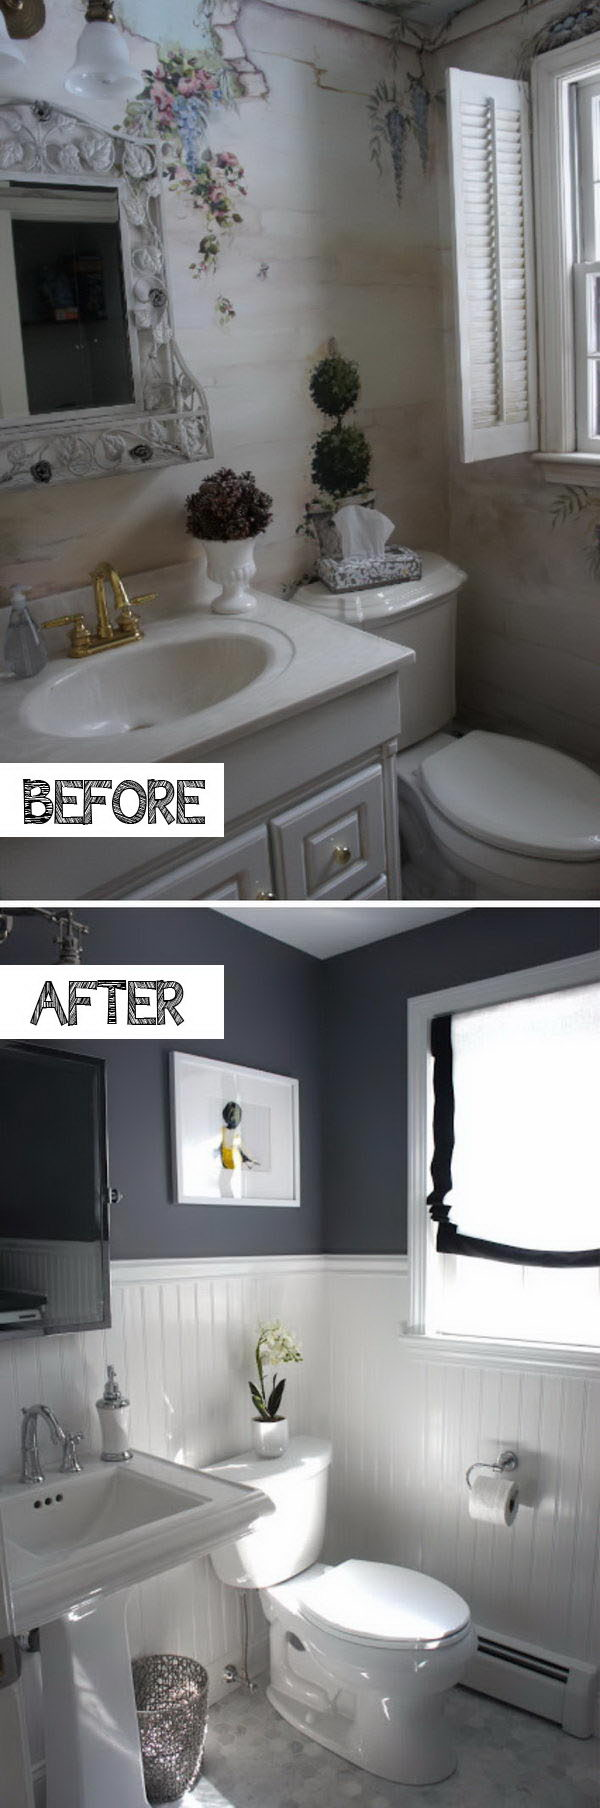 Get The Dash of Drama Without Darkness By Painting The Upper Portion Of The Wall Black, And Other Surfaces Left White.